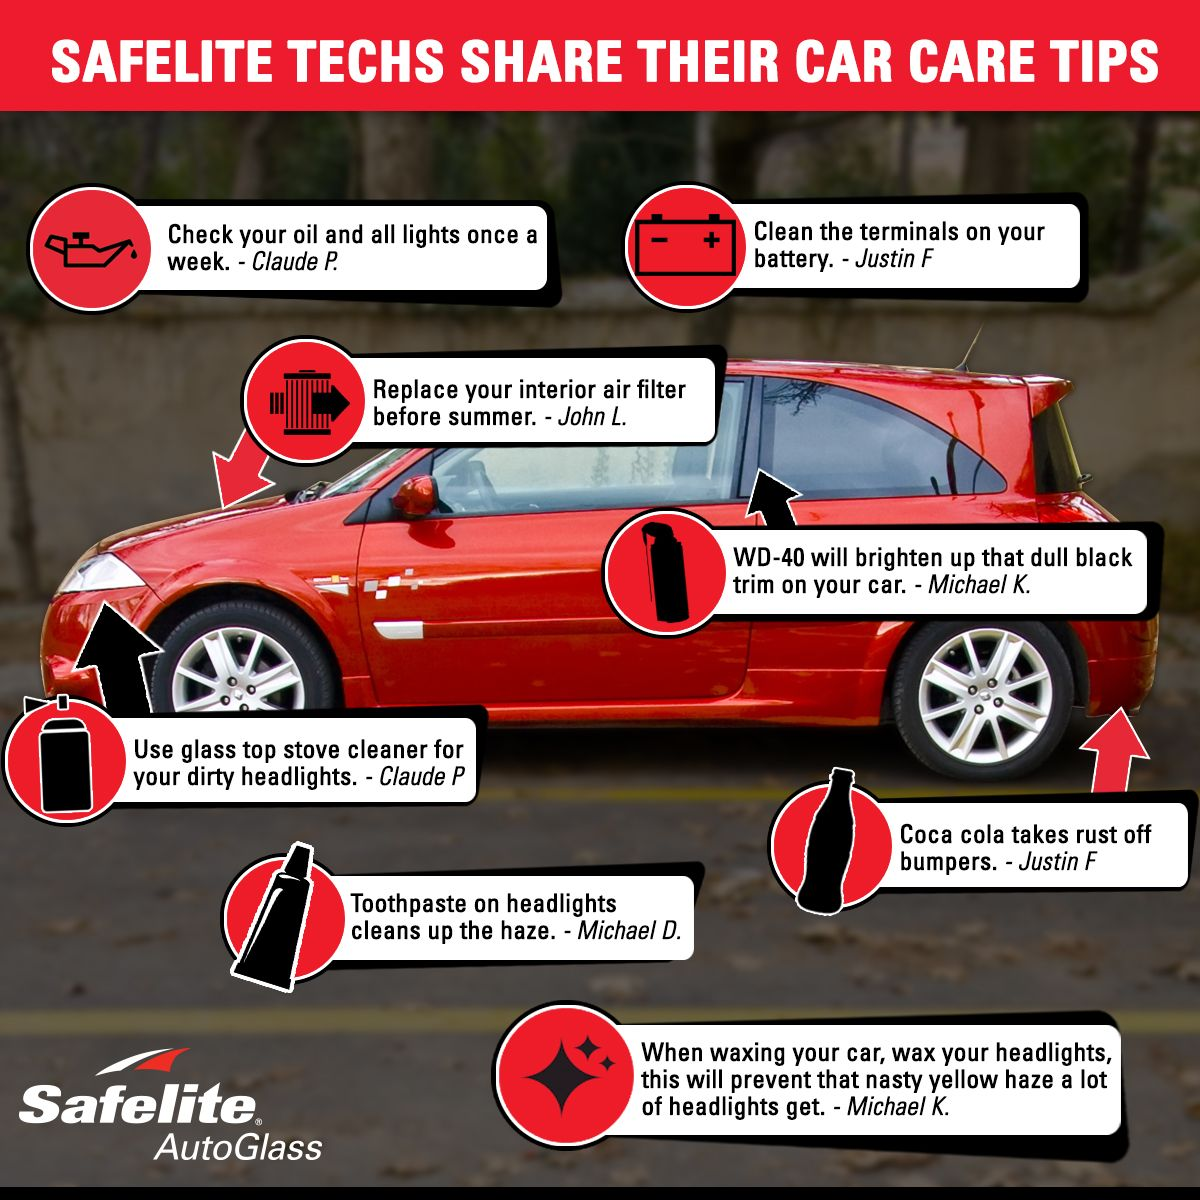 Our technicians know a thing or two about keeping cars well ...